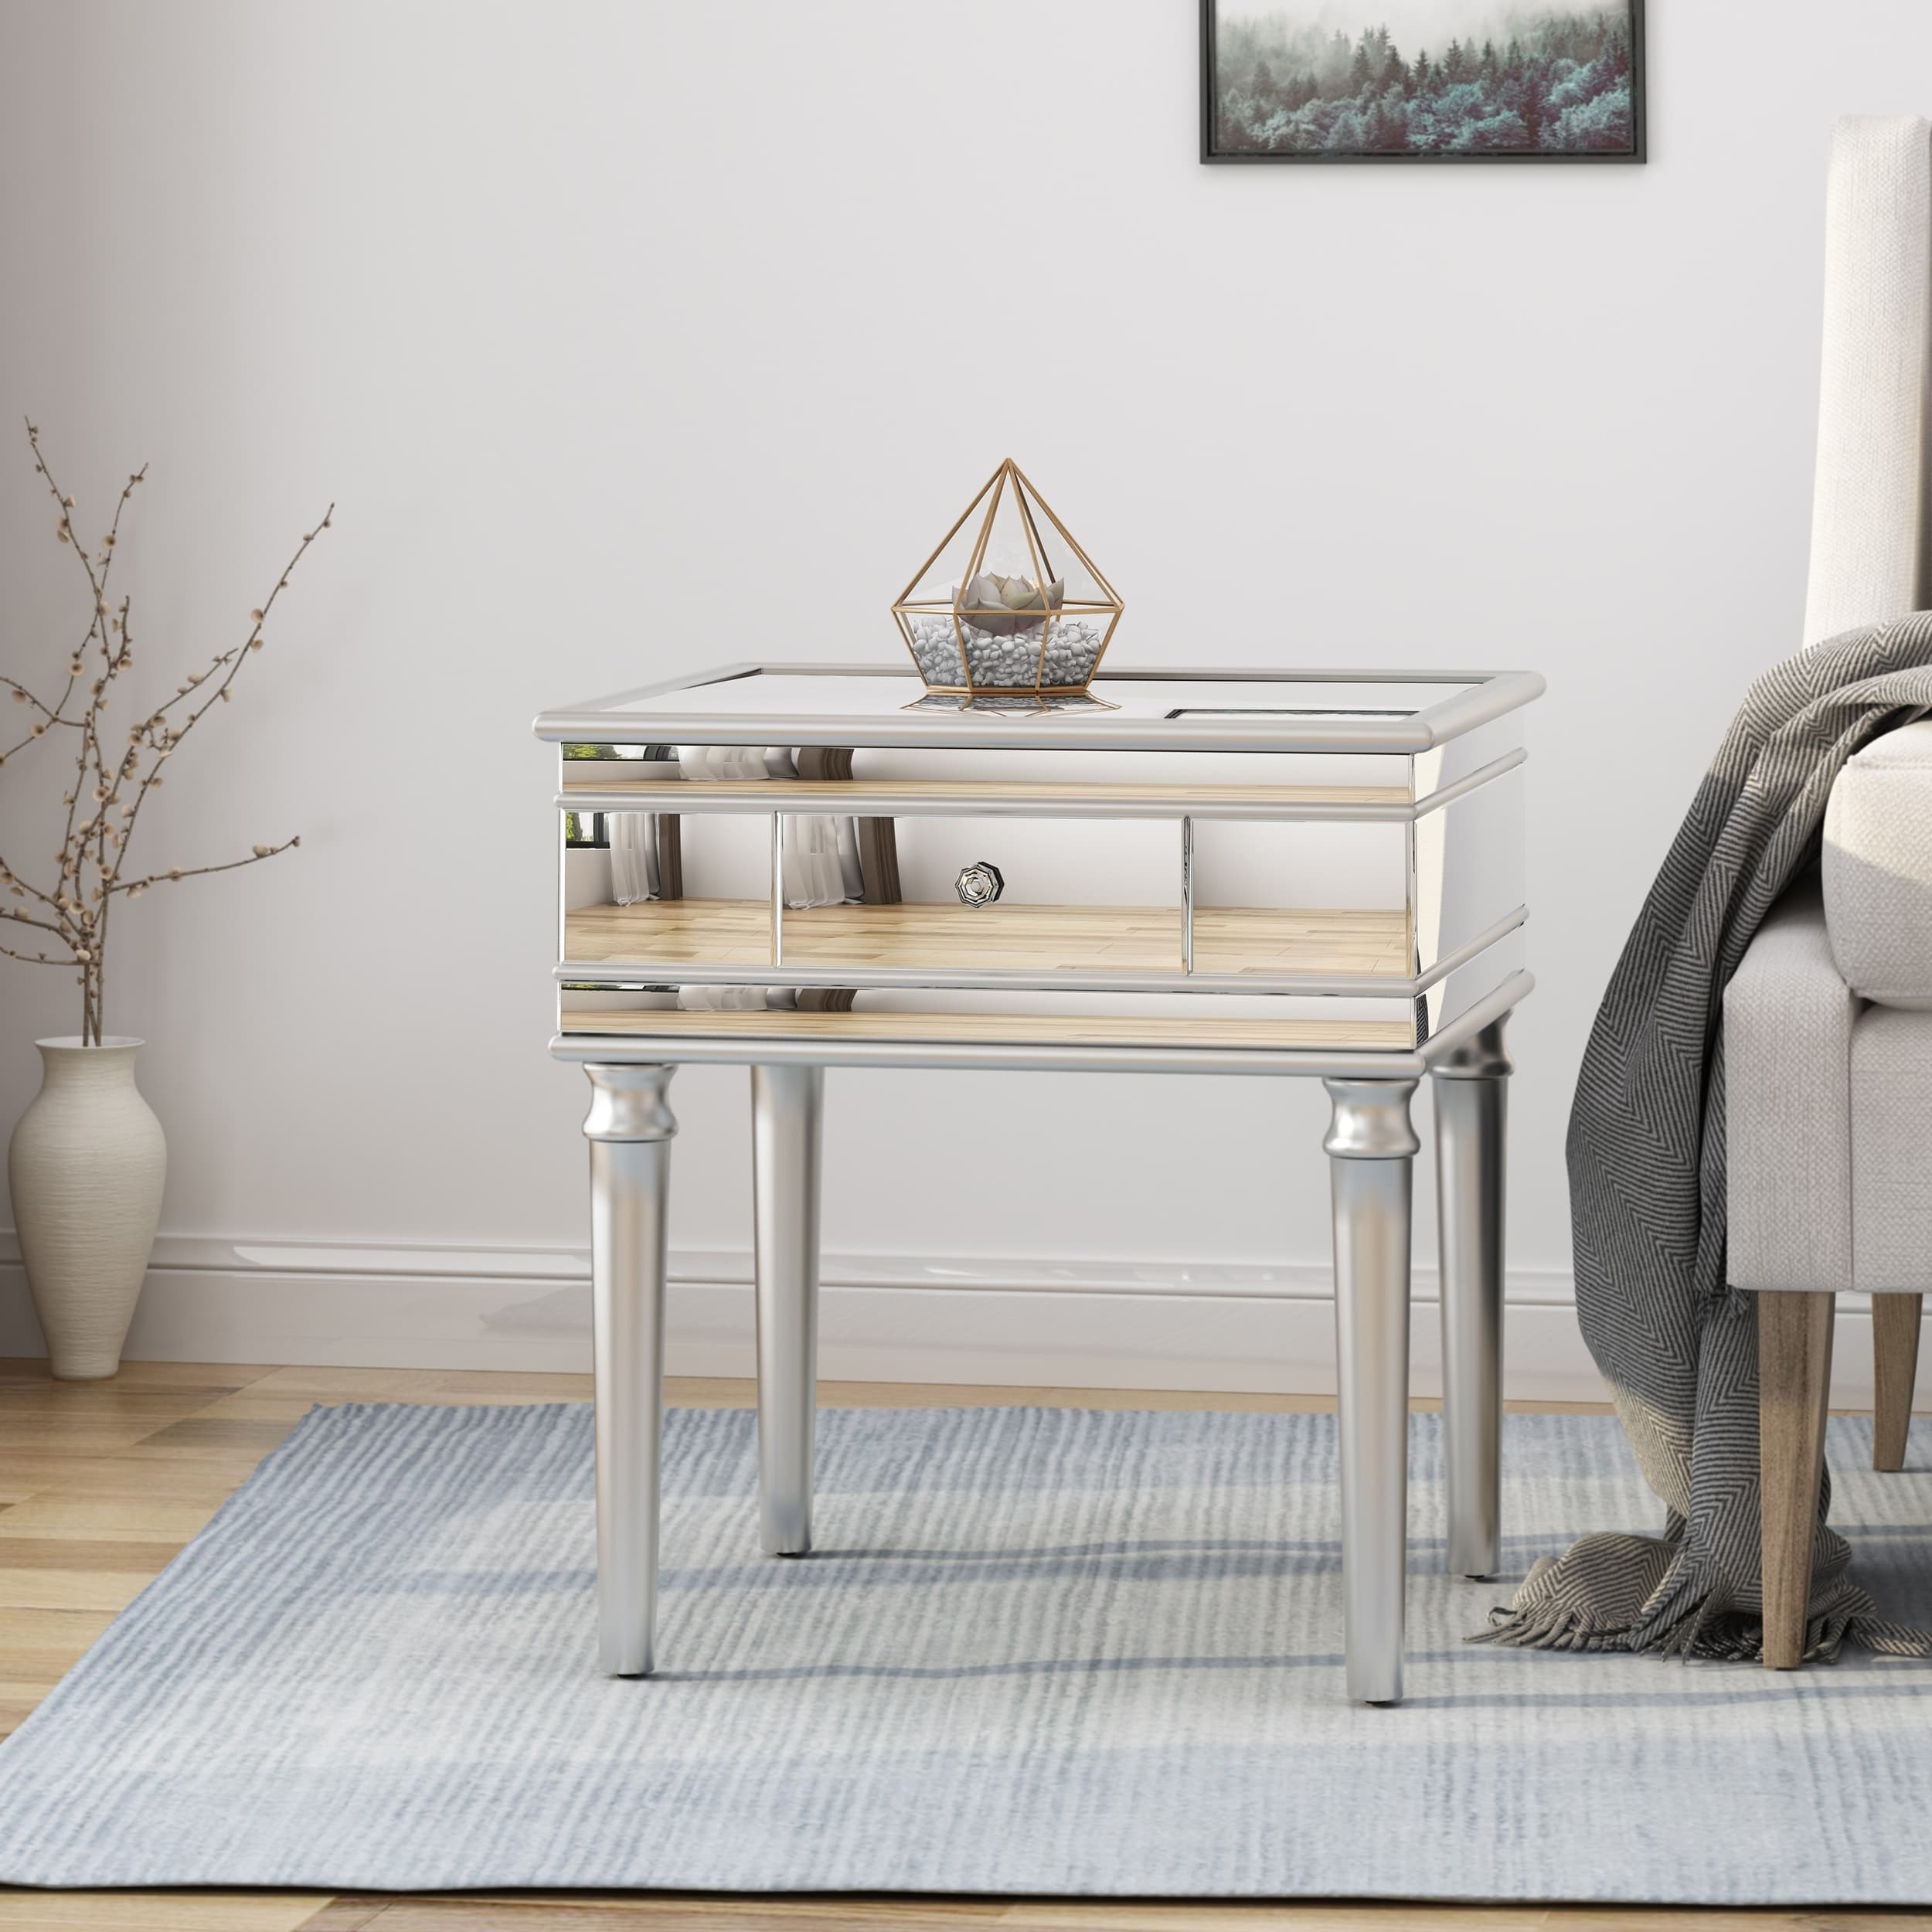 marinette modern tempered glass mirrored accent table with drawer christopher knight home free shipping today tray top side high legs drop leaf magnussen end sheesham wood console